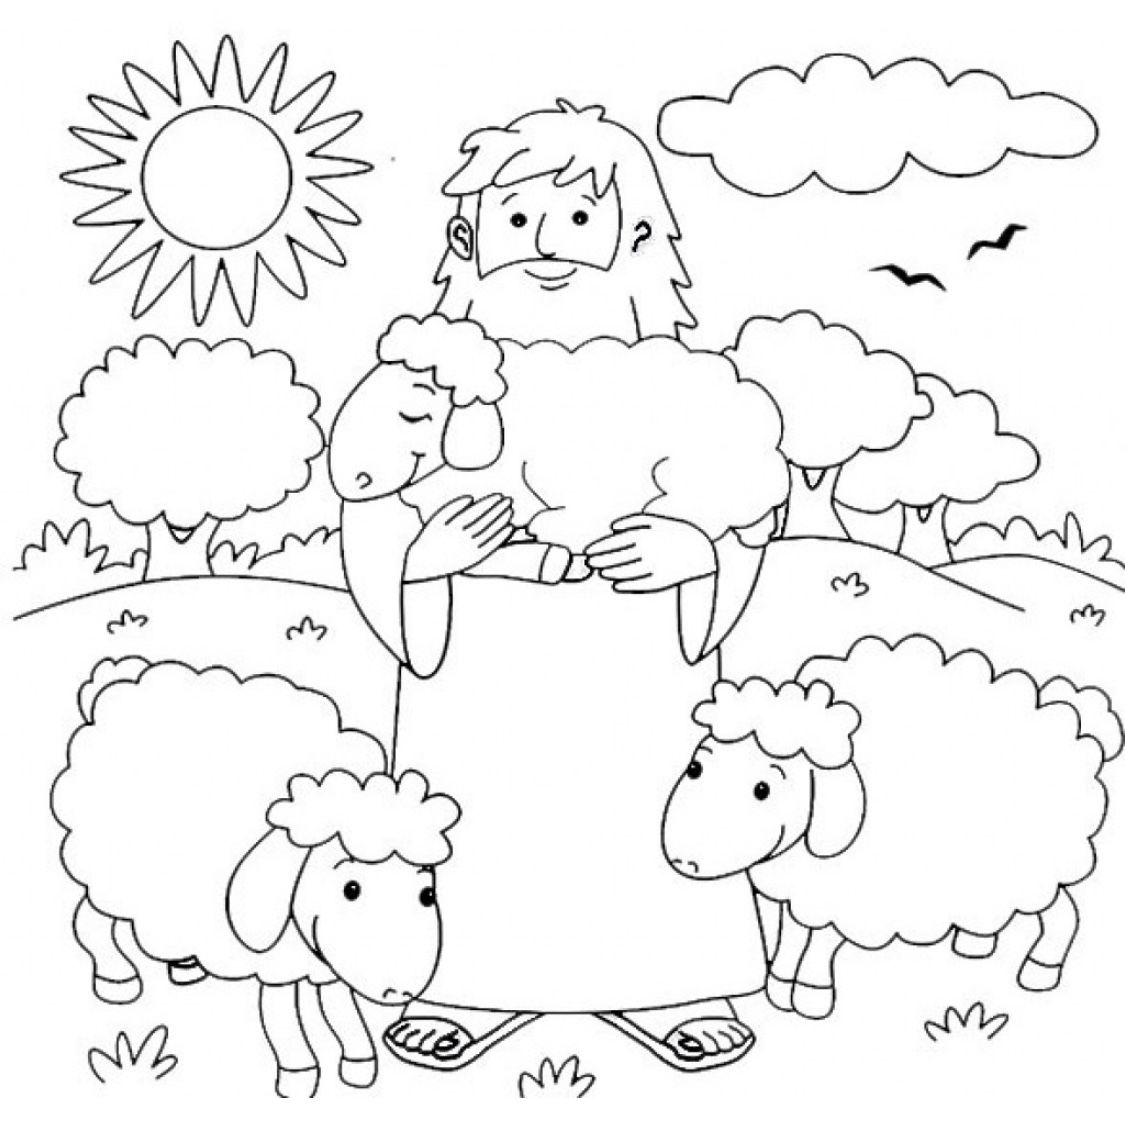 The Good Shepherd Coloring Page With